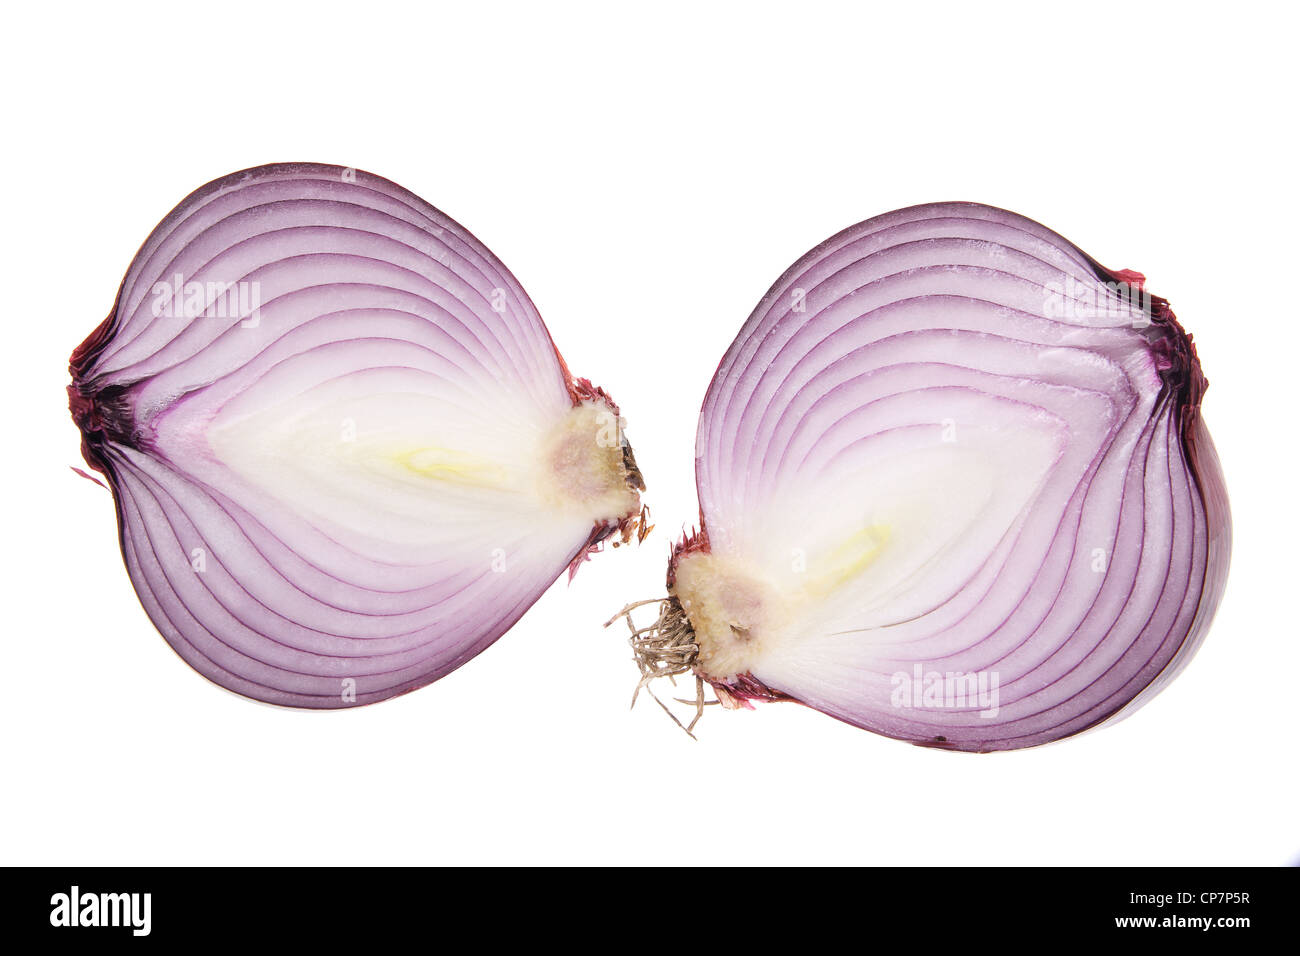 Red Onion - Stock Image